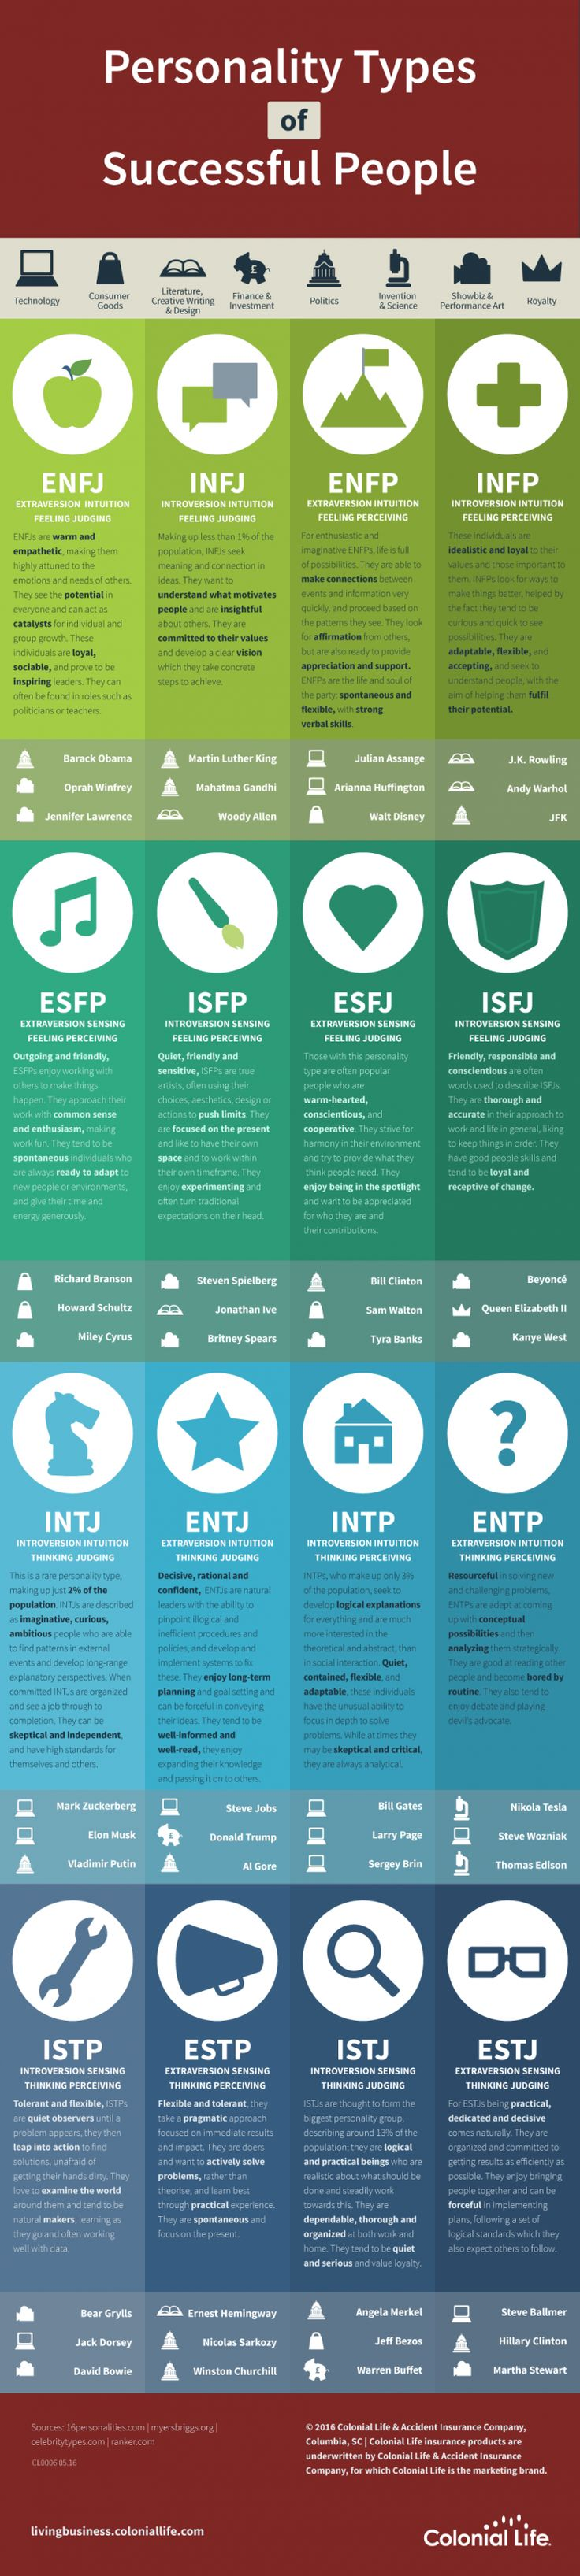 Most of us love to get insight into our own psyches through personality tests, yet have you ever wondered into which category the rich and famous fall?Discover which celebrities share your personality type in this infographic from Colonial Life.Via Colonial Life.Like infographics? So do we.